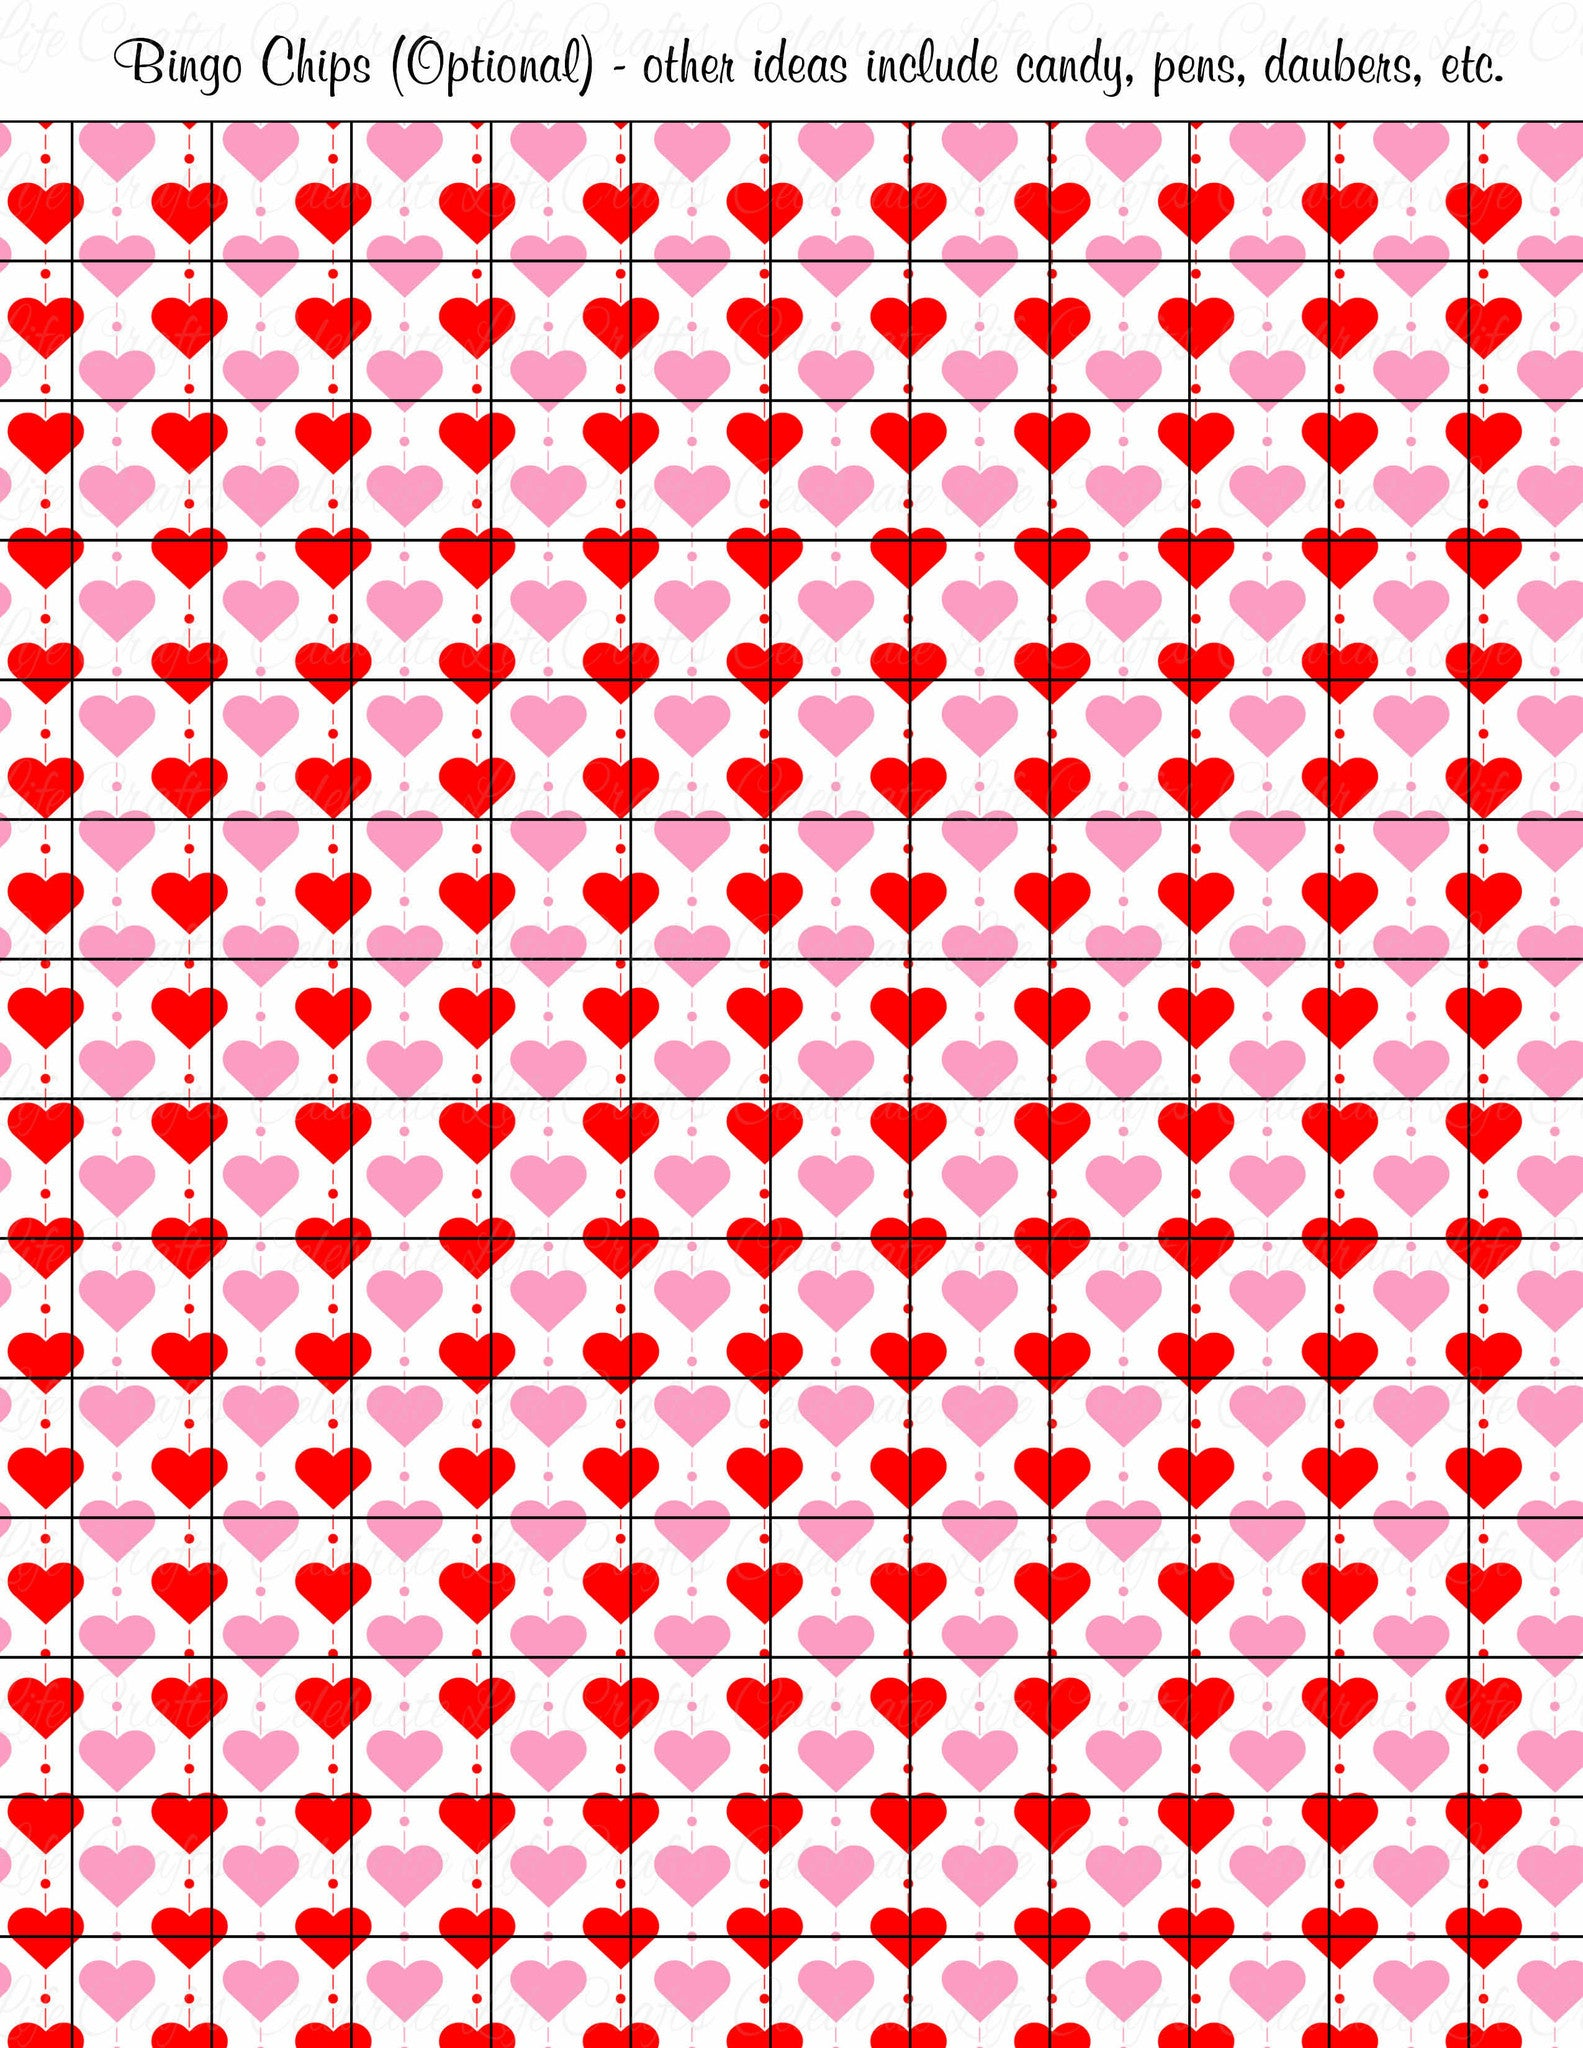 picture about Bingo Chips Printable identified as Valentine Bingo Recreation Obtain for Getaway Get together Recommendations